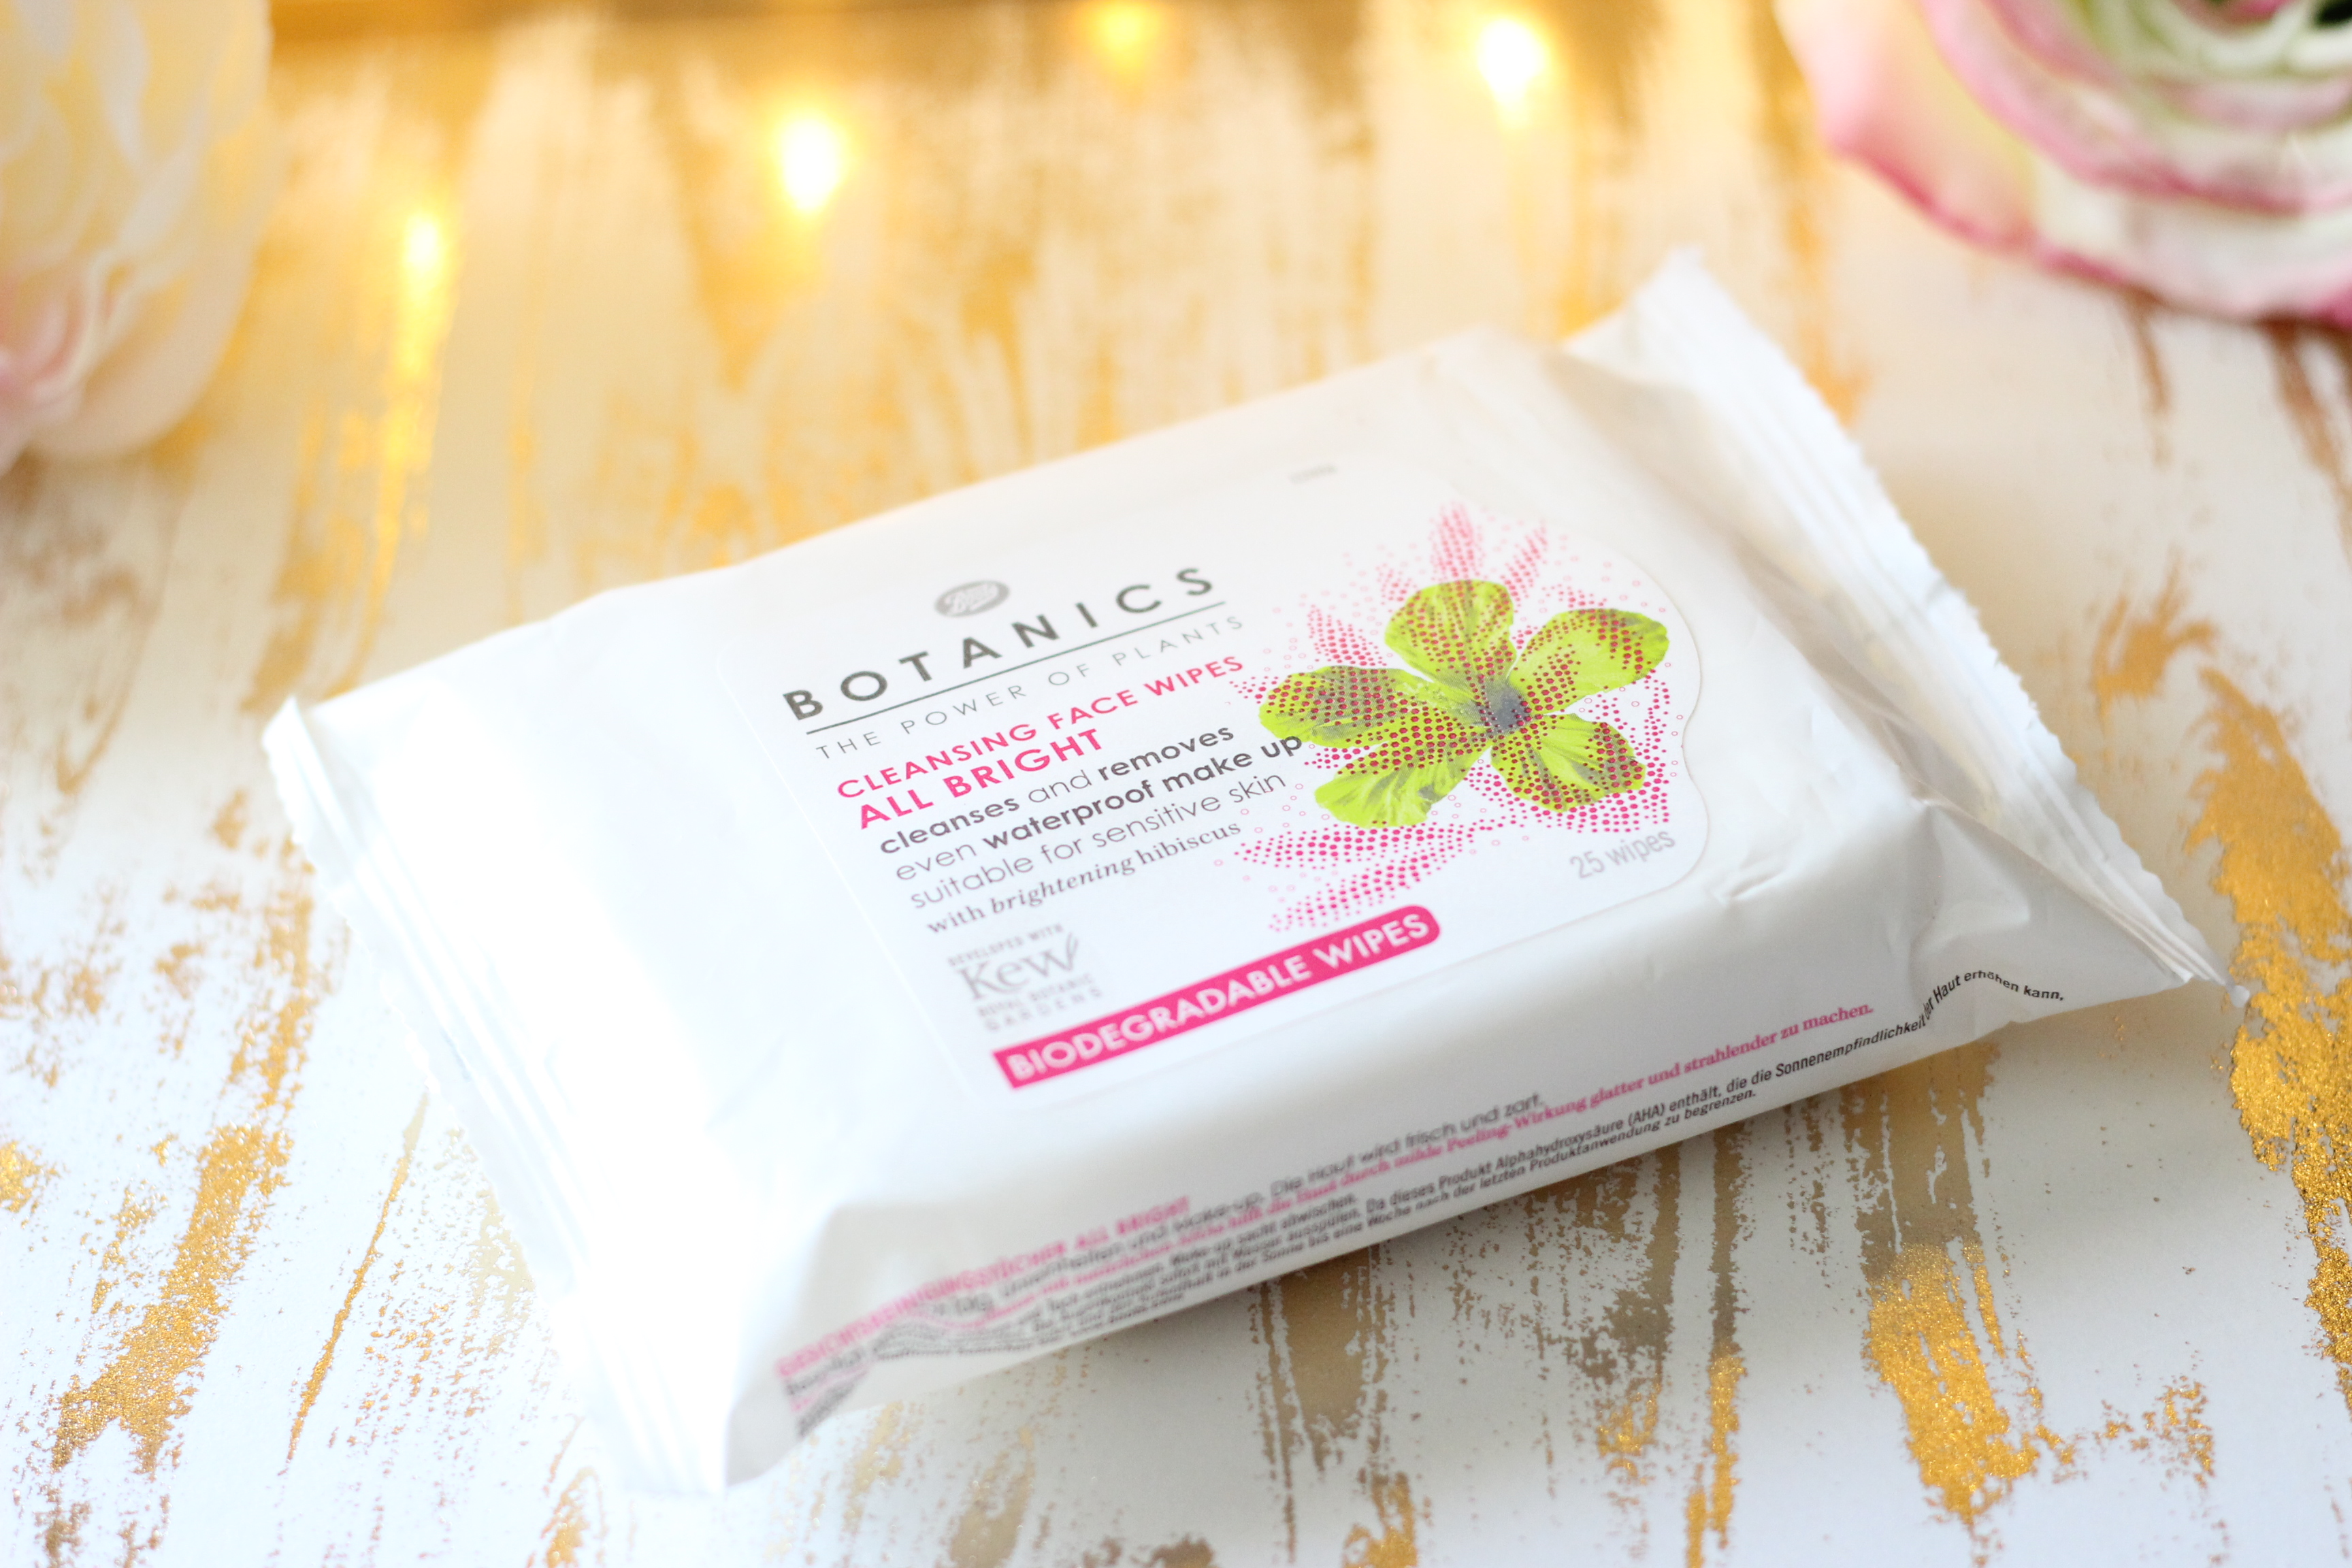 Boots Facial Wipes Review